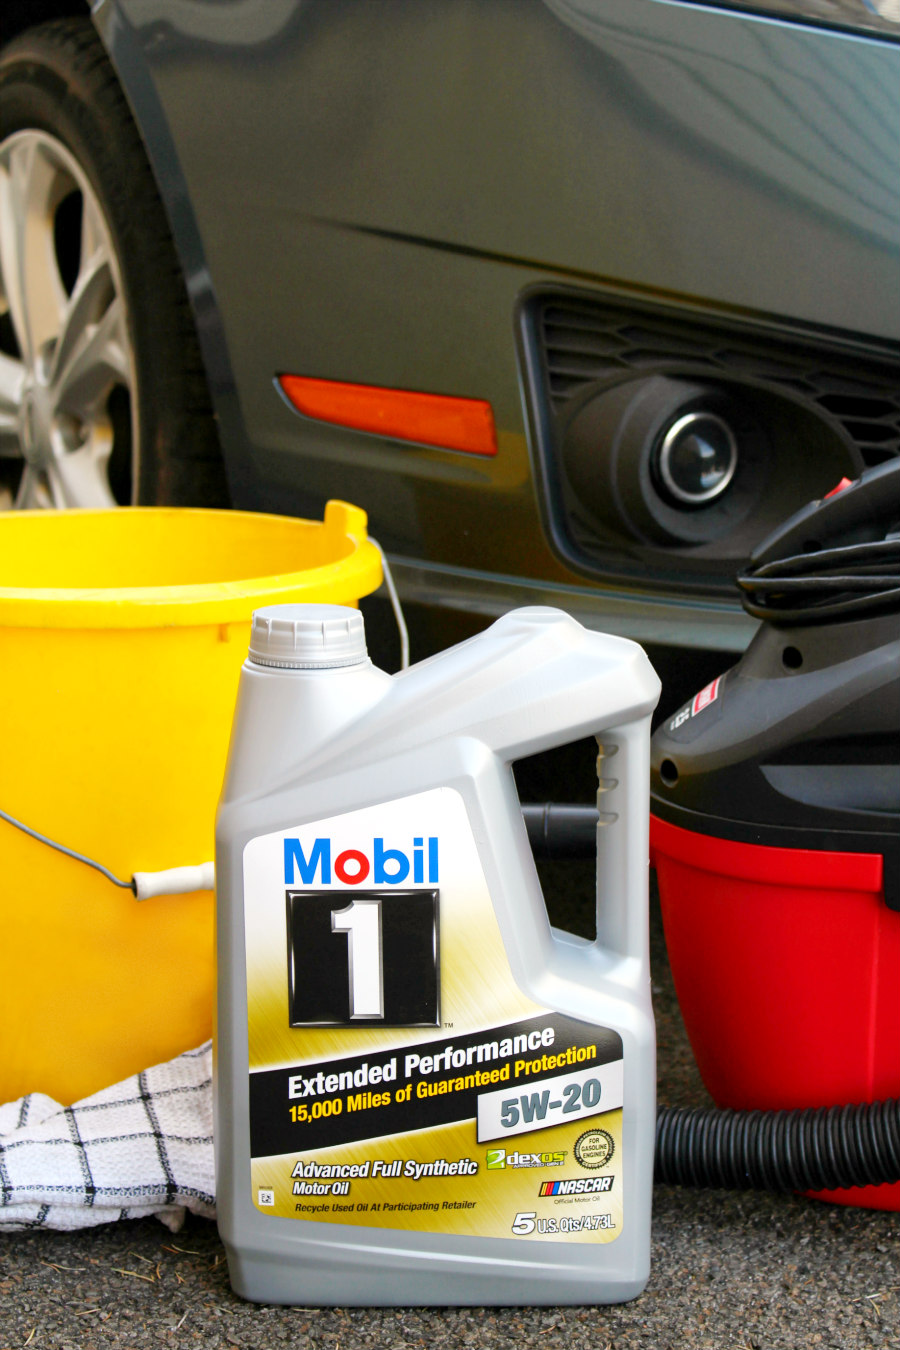 5 Easy Ways to Spring Clean Your Car - Living La Vida Holoka